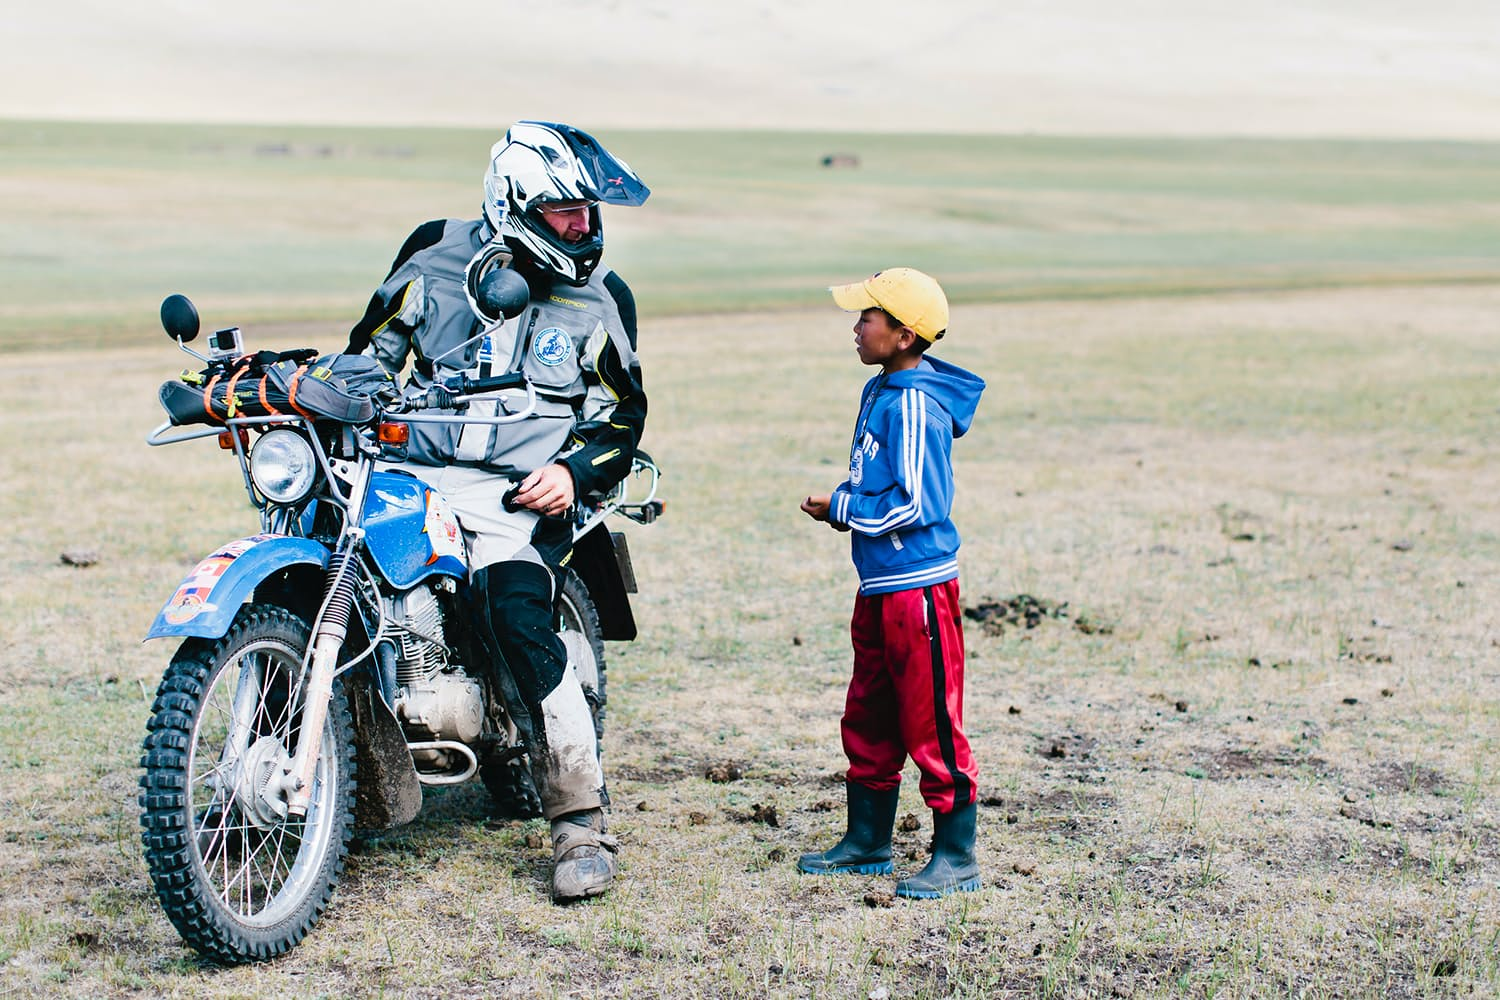 Of mongolia today tomorrow and the development bank of mongolia s - My Fellow Riders Are From All Over The World Germany New Zealand Lebanon Russia Mongolia The United States And In The Months Leading Up To Our